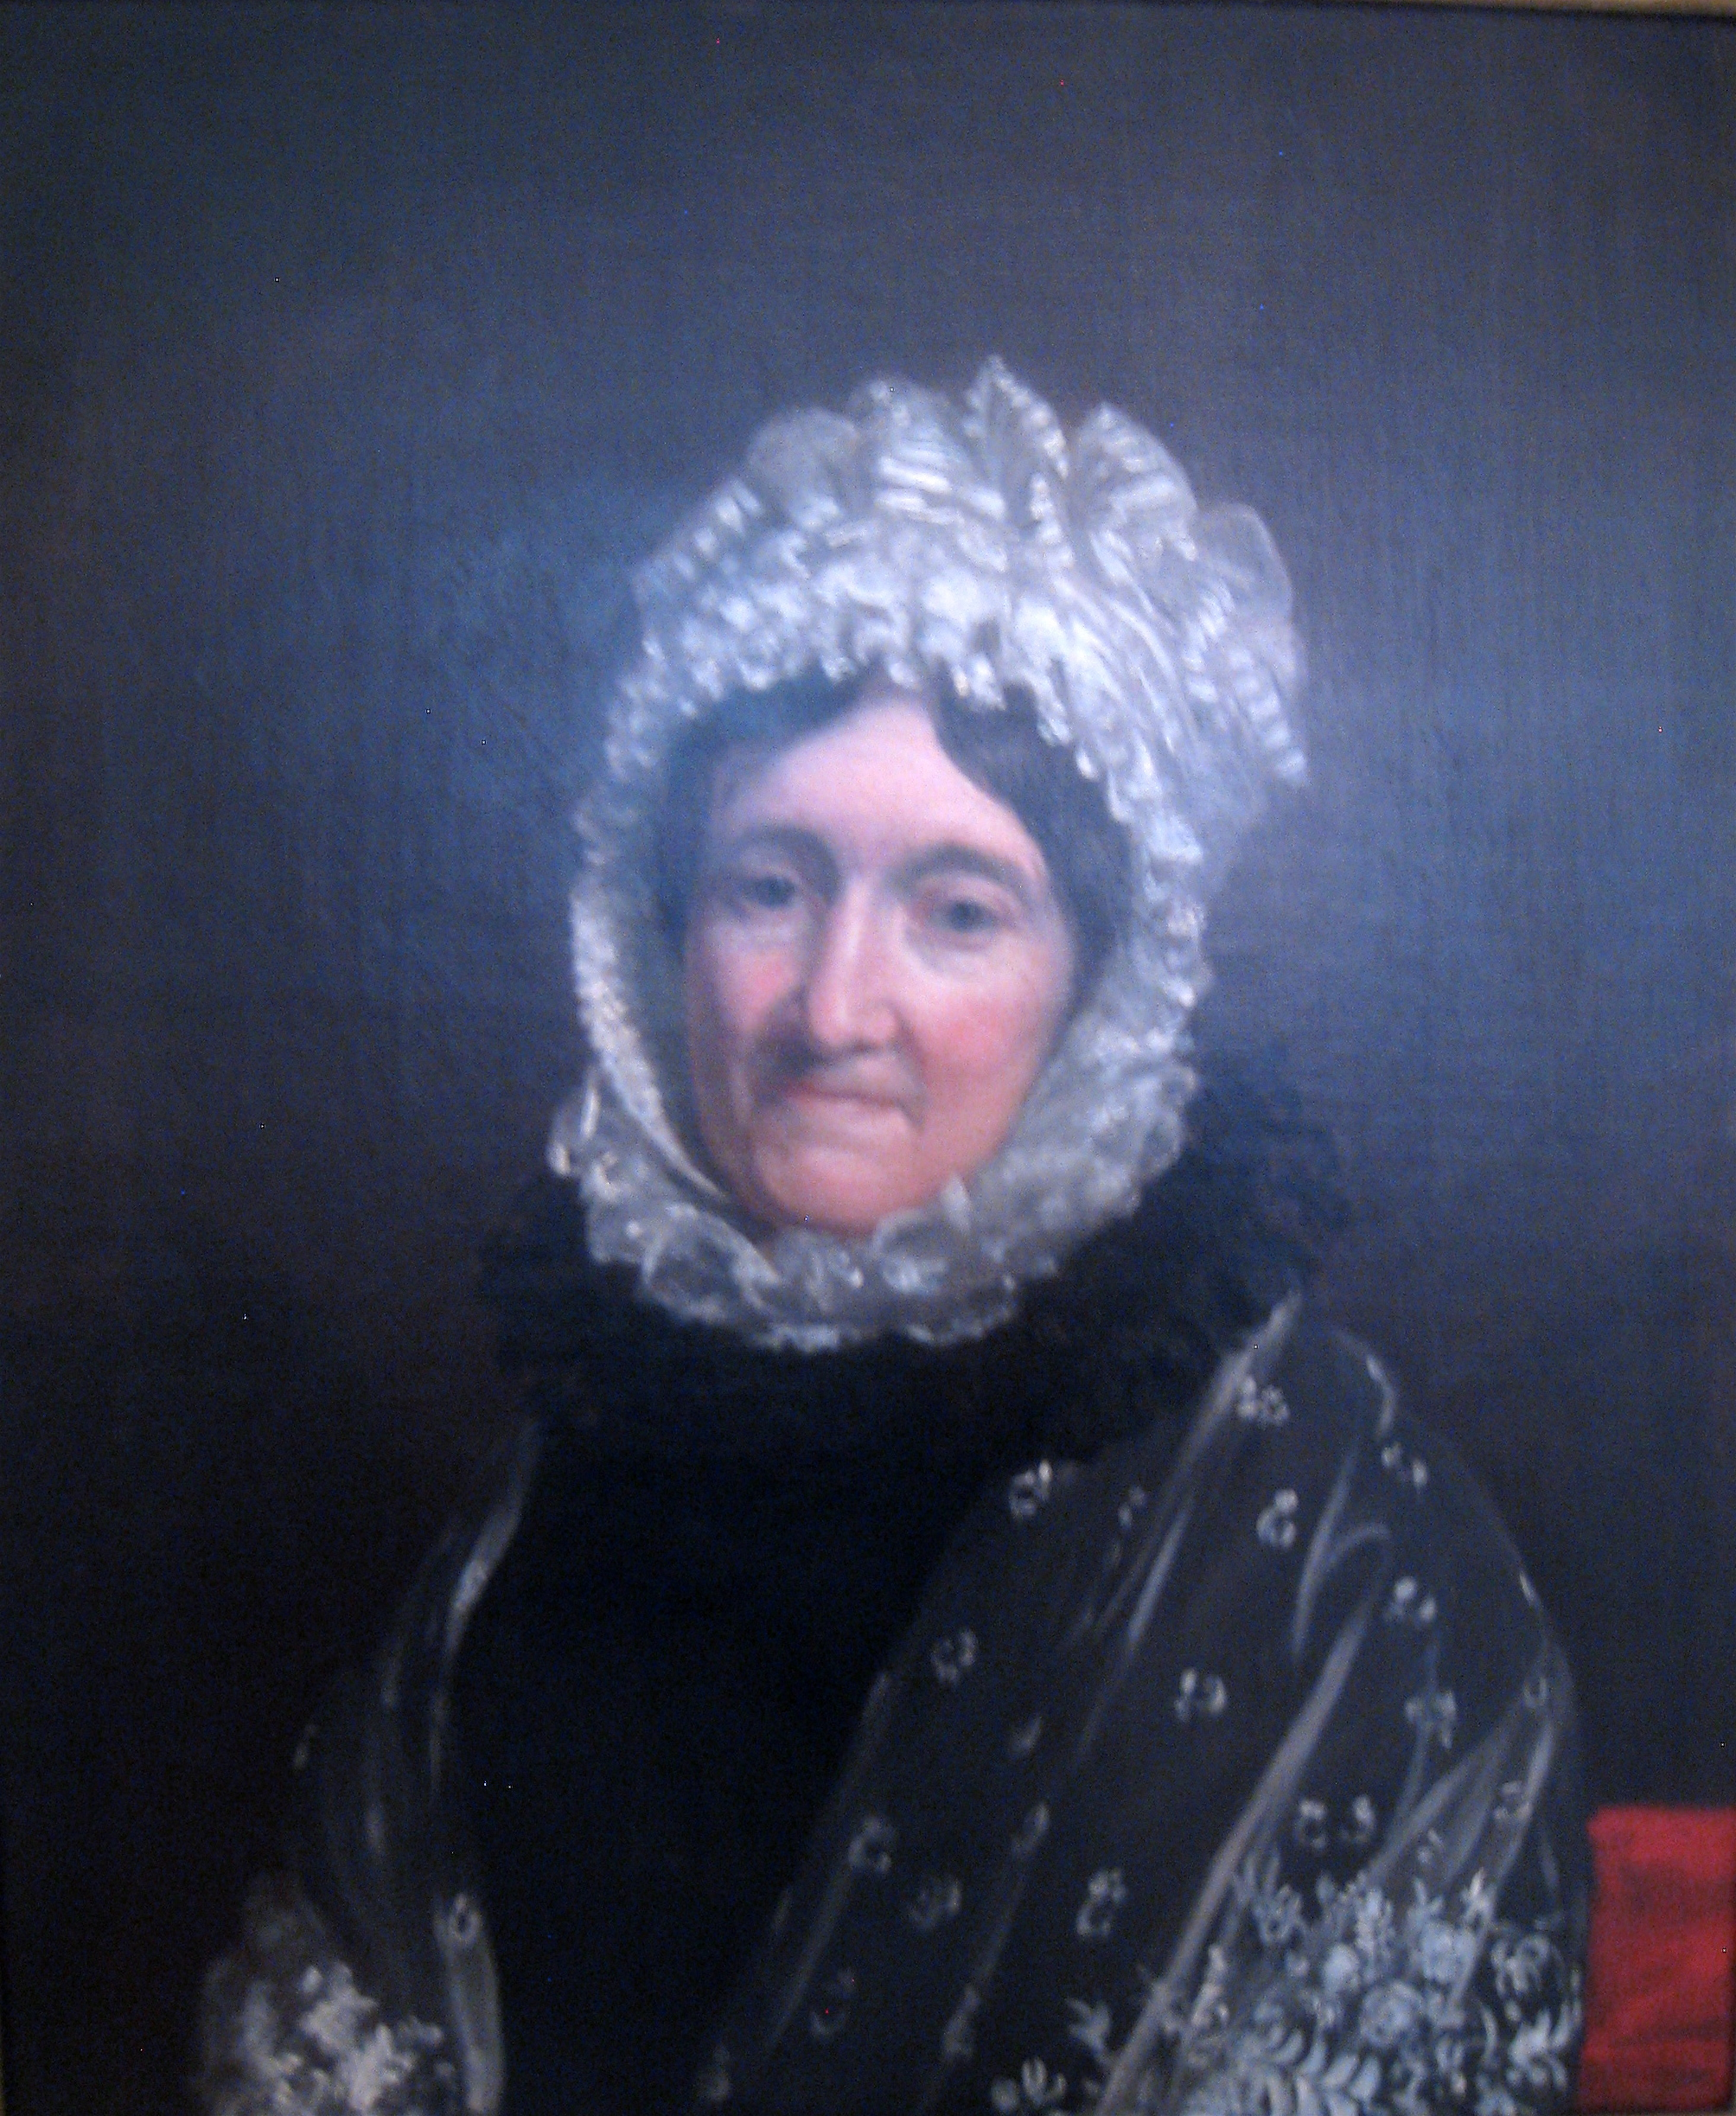 https://i0.wp.com/upload.wikimedia.org/wikipedia/commons/f/ff/Priscilla_Scollay_Melville_by_Francis_Alexander_Old_State_House_Museum%2C_Boston%2C_MA_-_IMG_6712.JPG